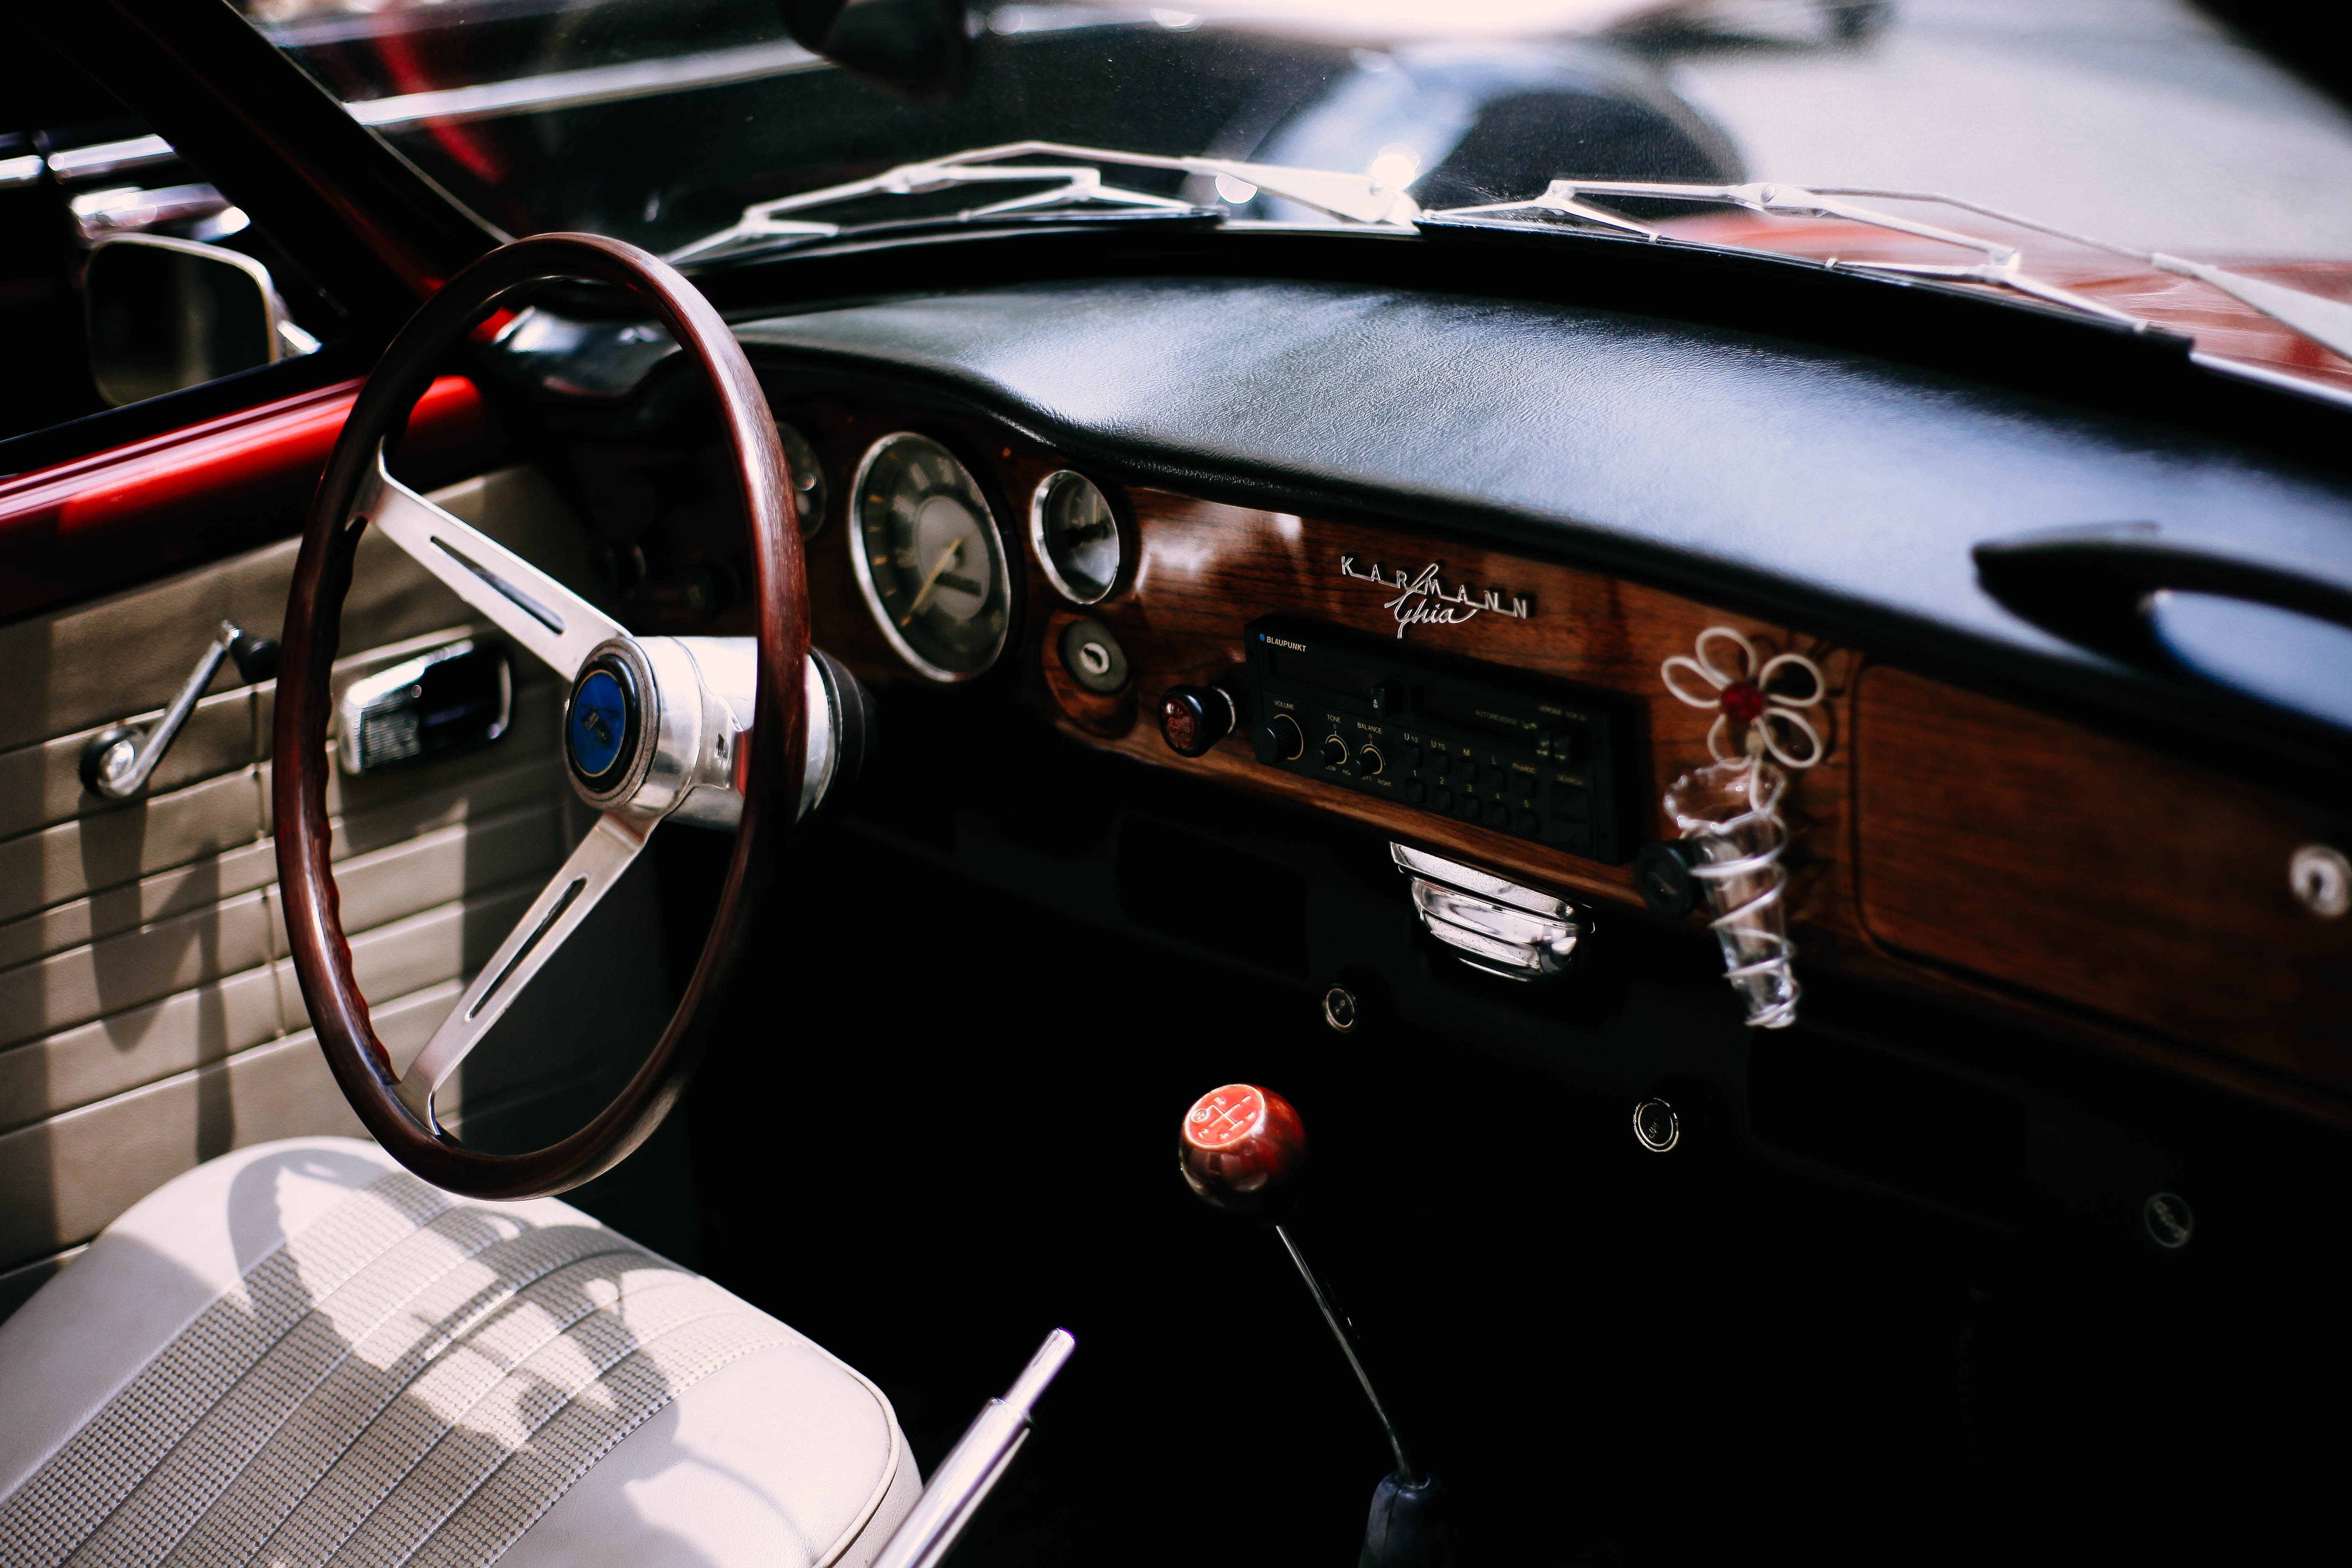 Black And Brown Car Interior Free Stock Photo